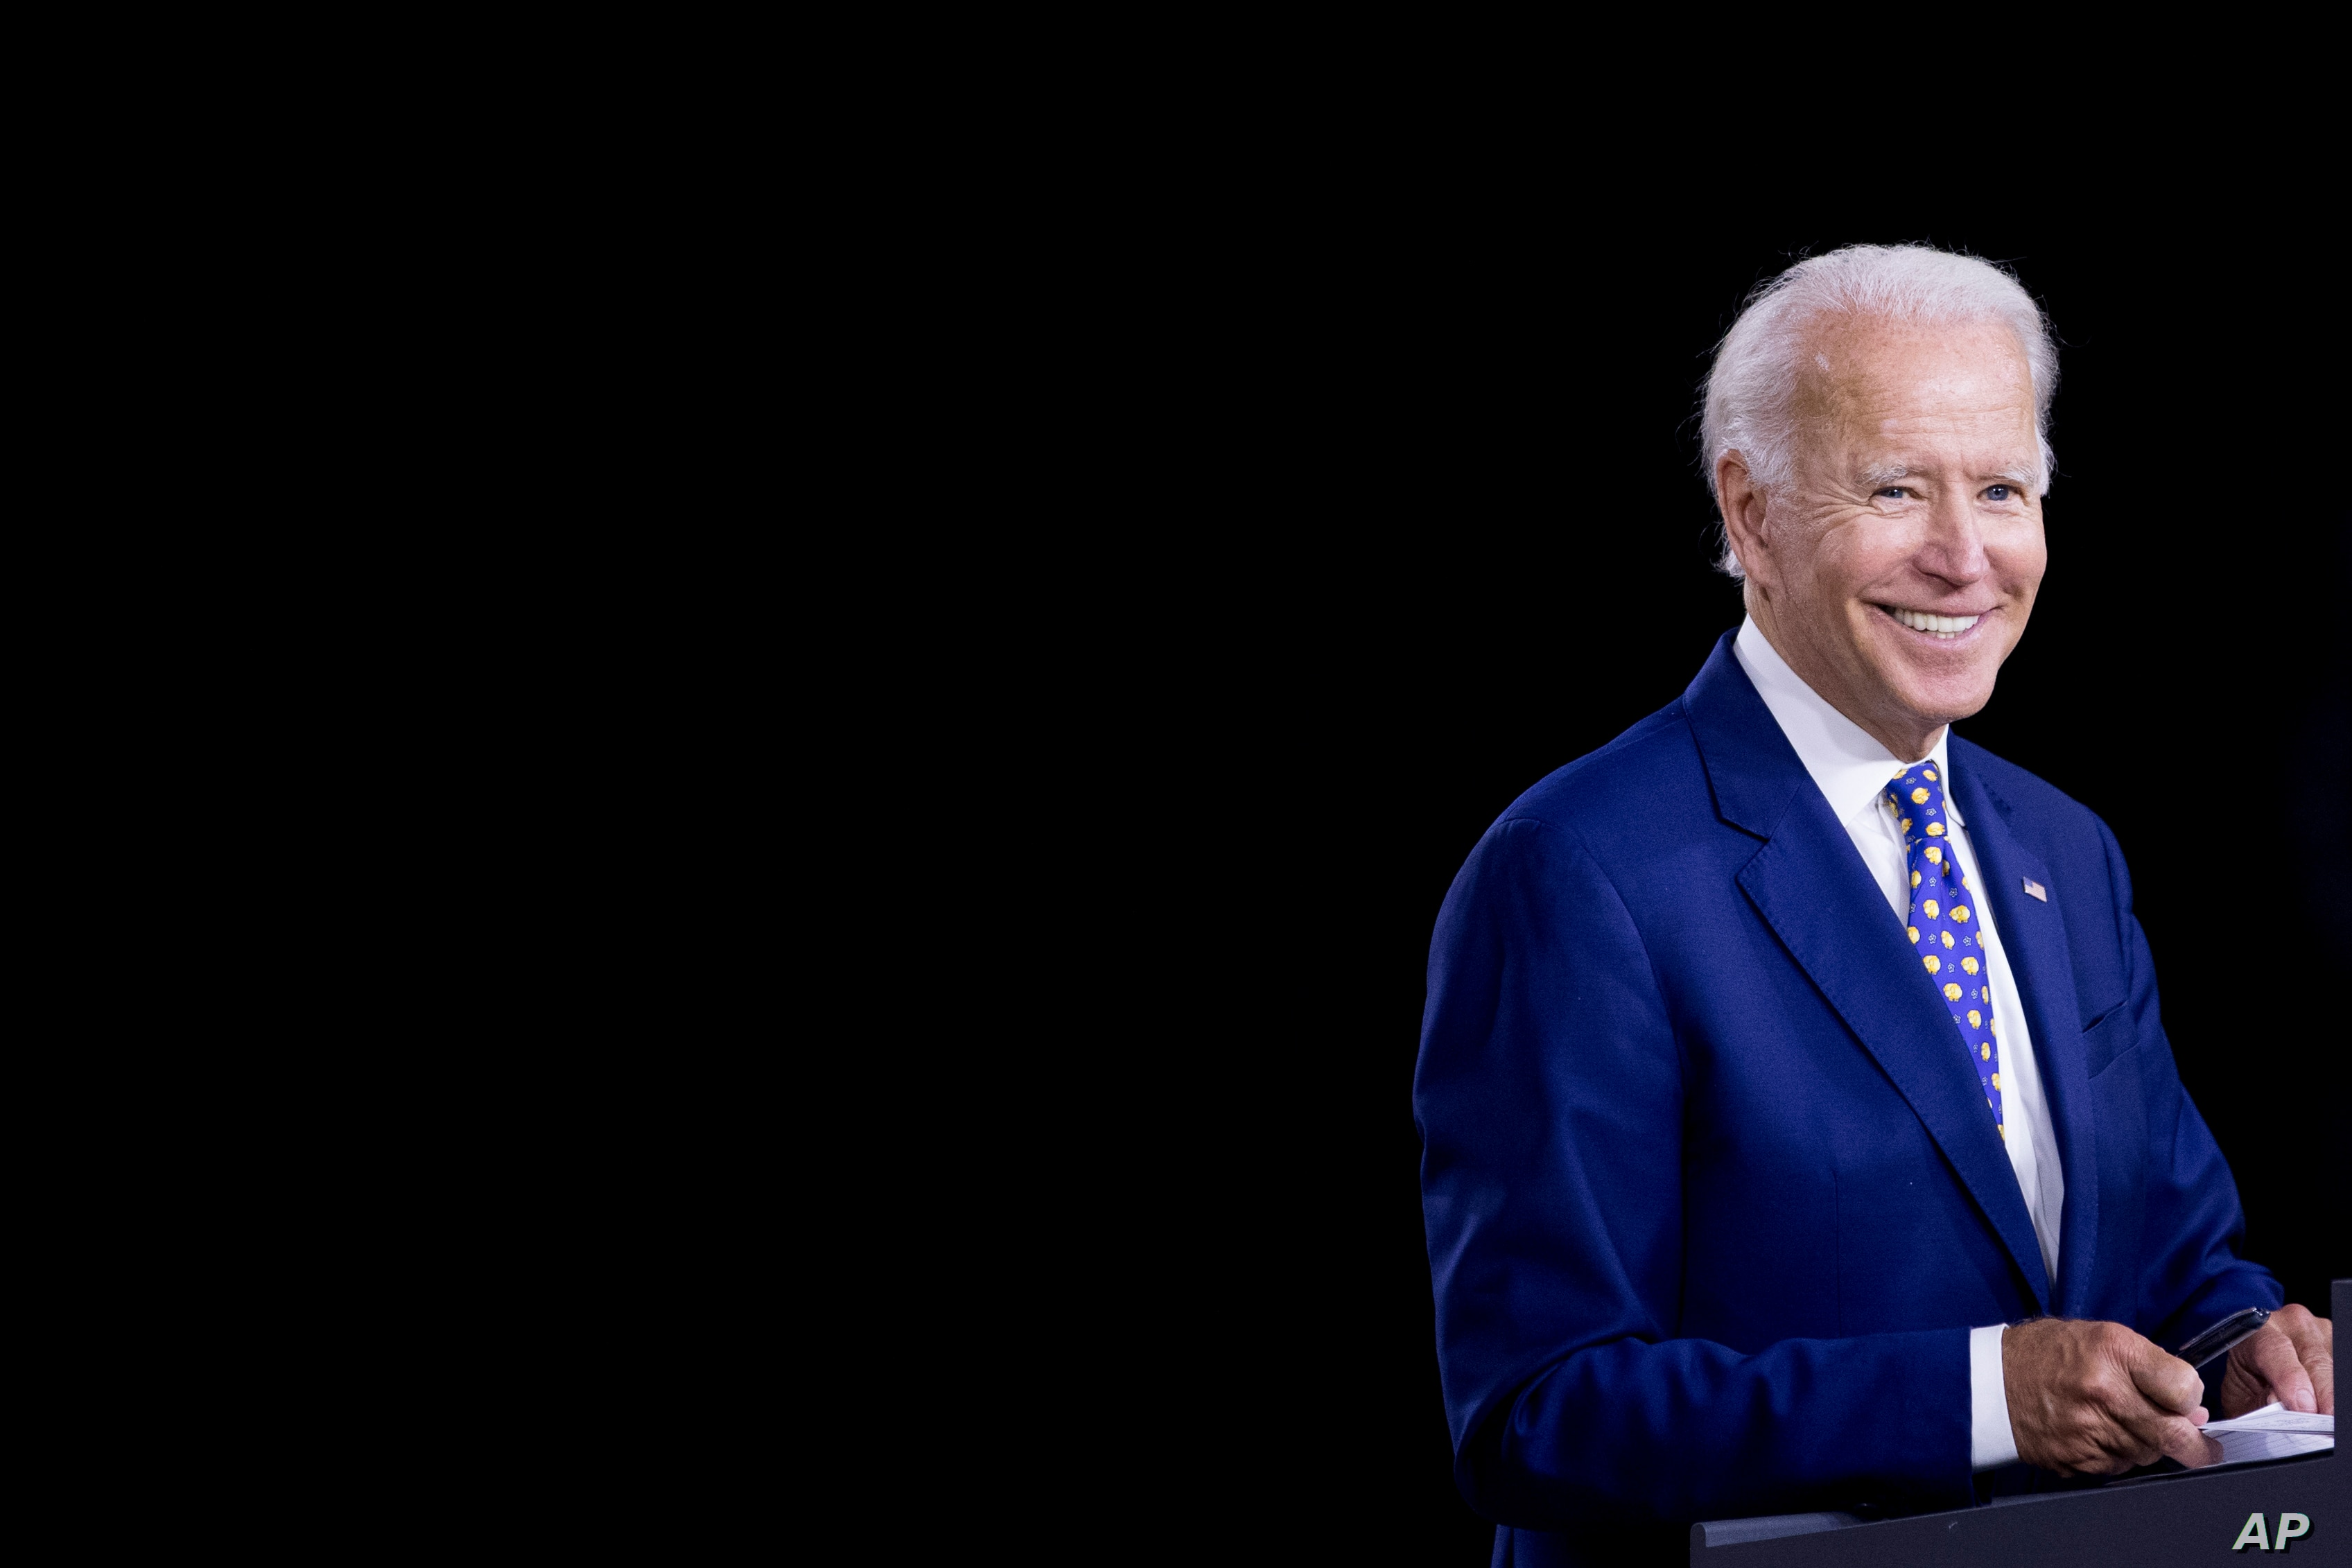 Biden Risks Alienating Young Black Voters After Race Remarks Voice Of America English